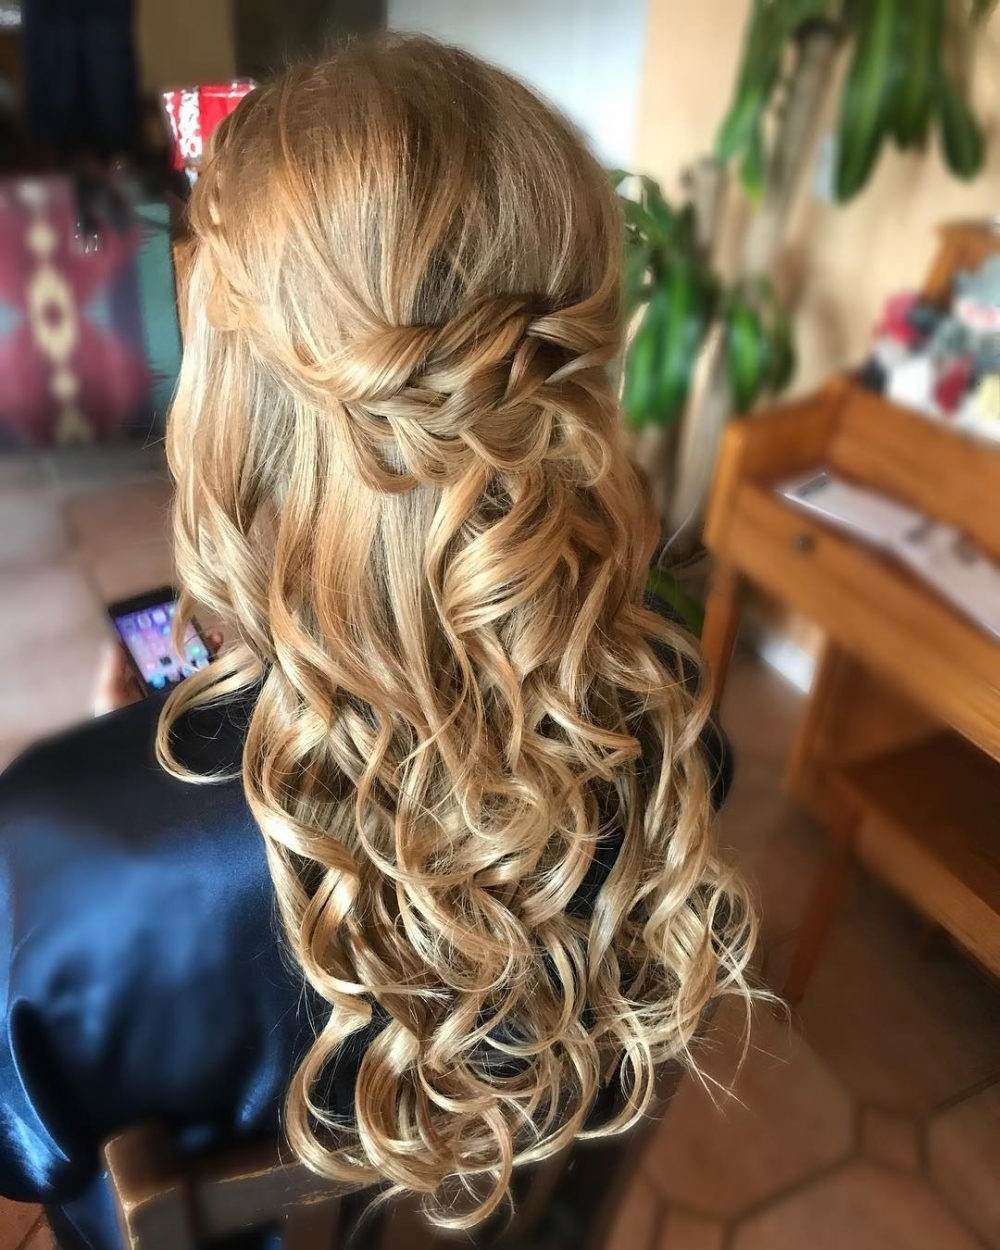 Most Current Wedding Updos For Long Thick Hair Within Wedding Hairstyles For Long Hair: 24 Creative & Unique Wedding Styles (View 6 of 15)